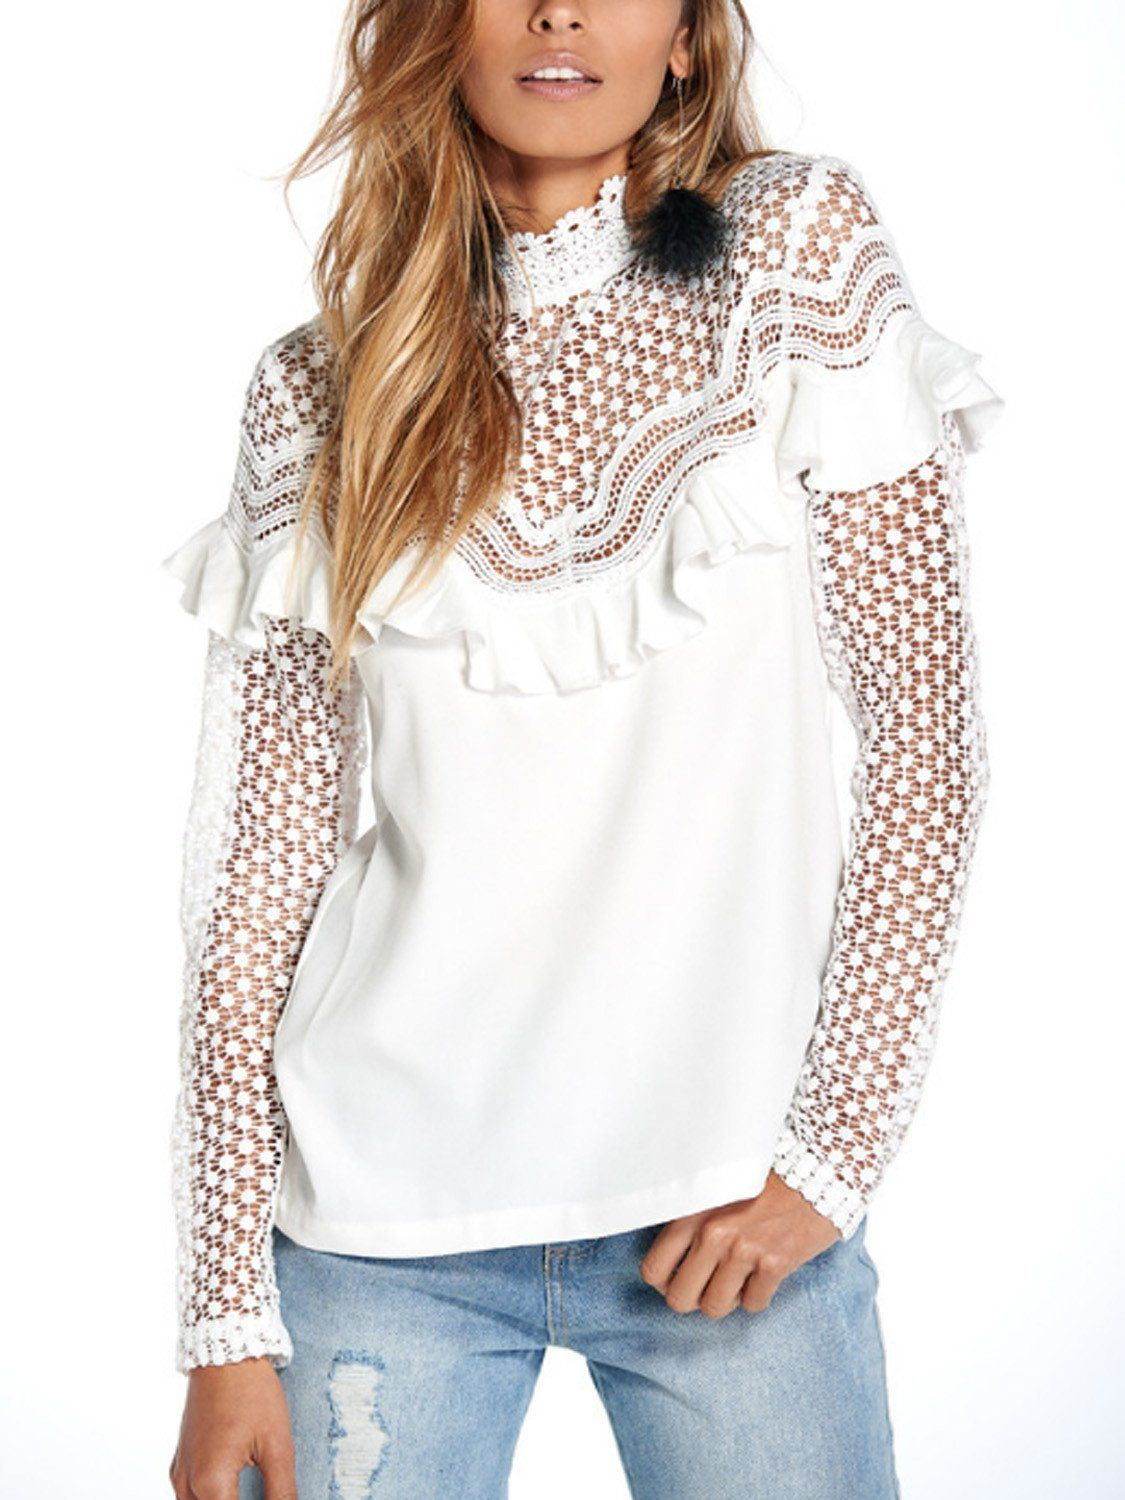 9d9805d67f513c White High Neck Long Sleeve Ruffle Cut Out Sheer Lace Blouse ...